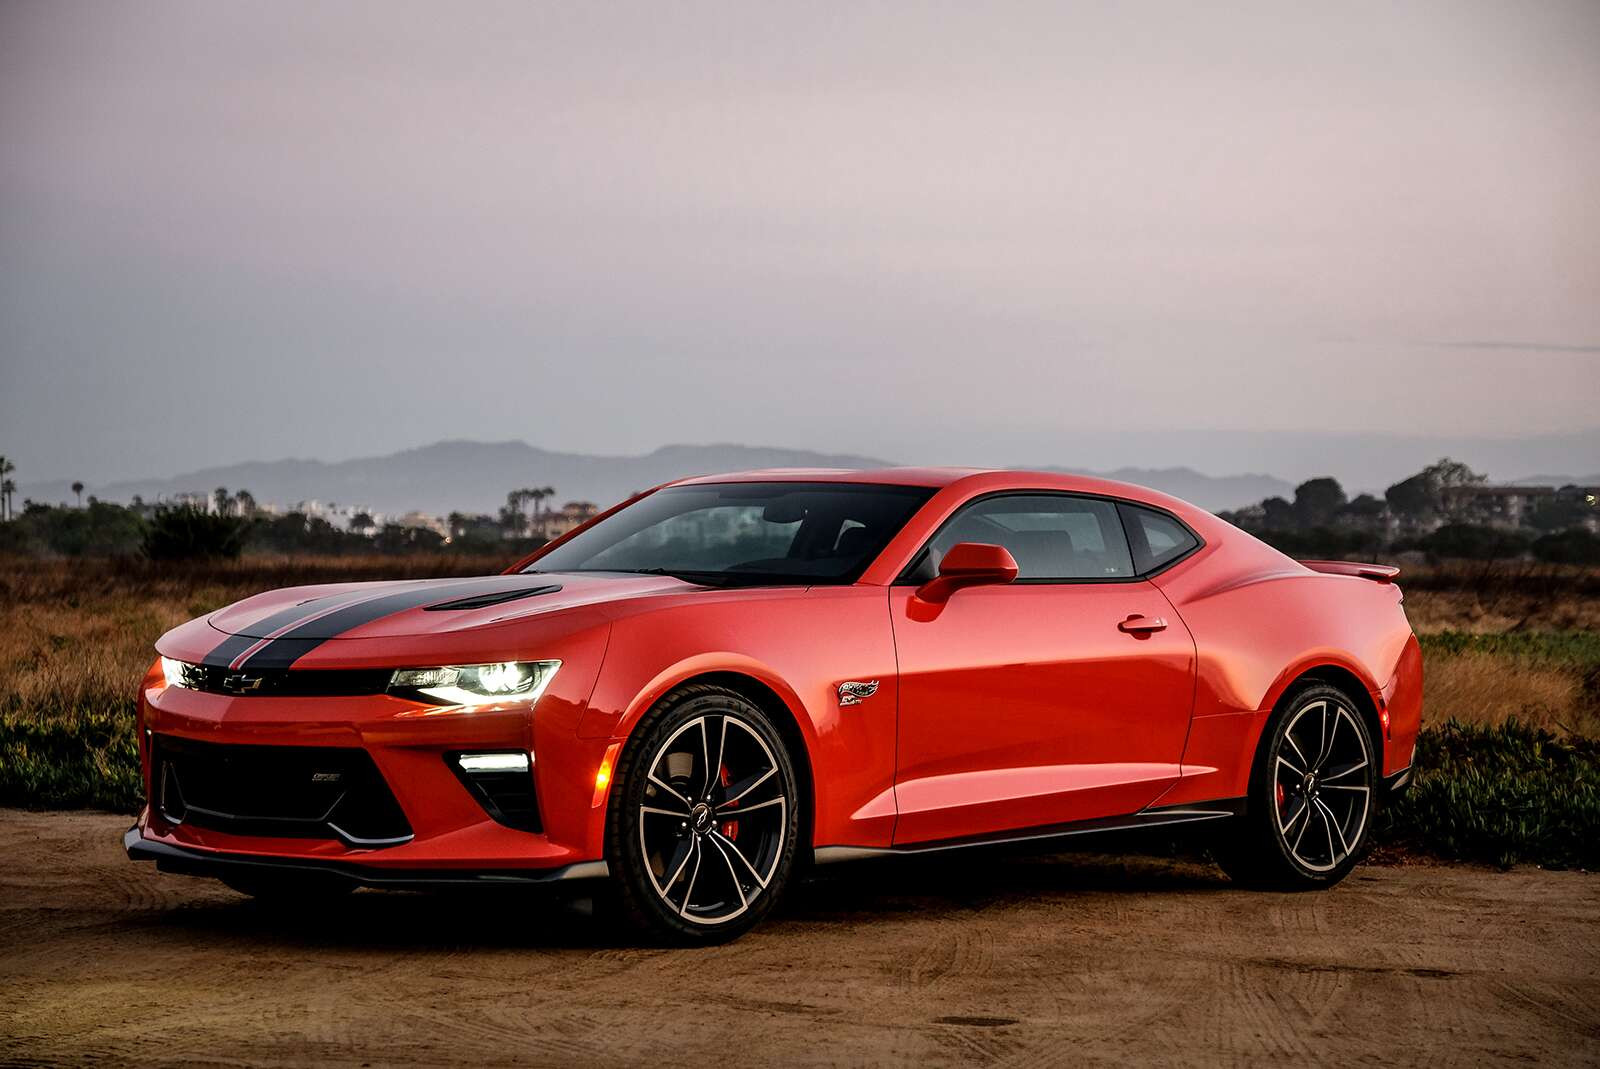 2018 Chevrolet Camaro Ss Hot Wheels Edition Review Solid Muscle Car